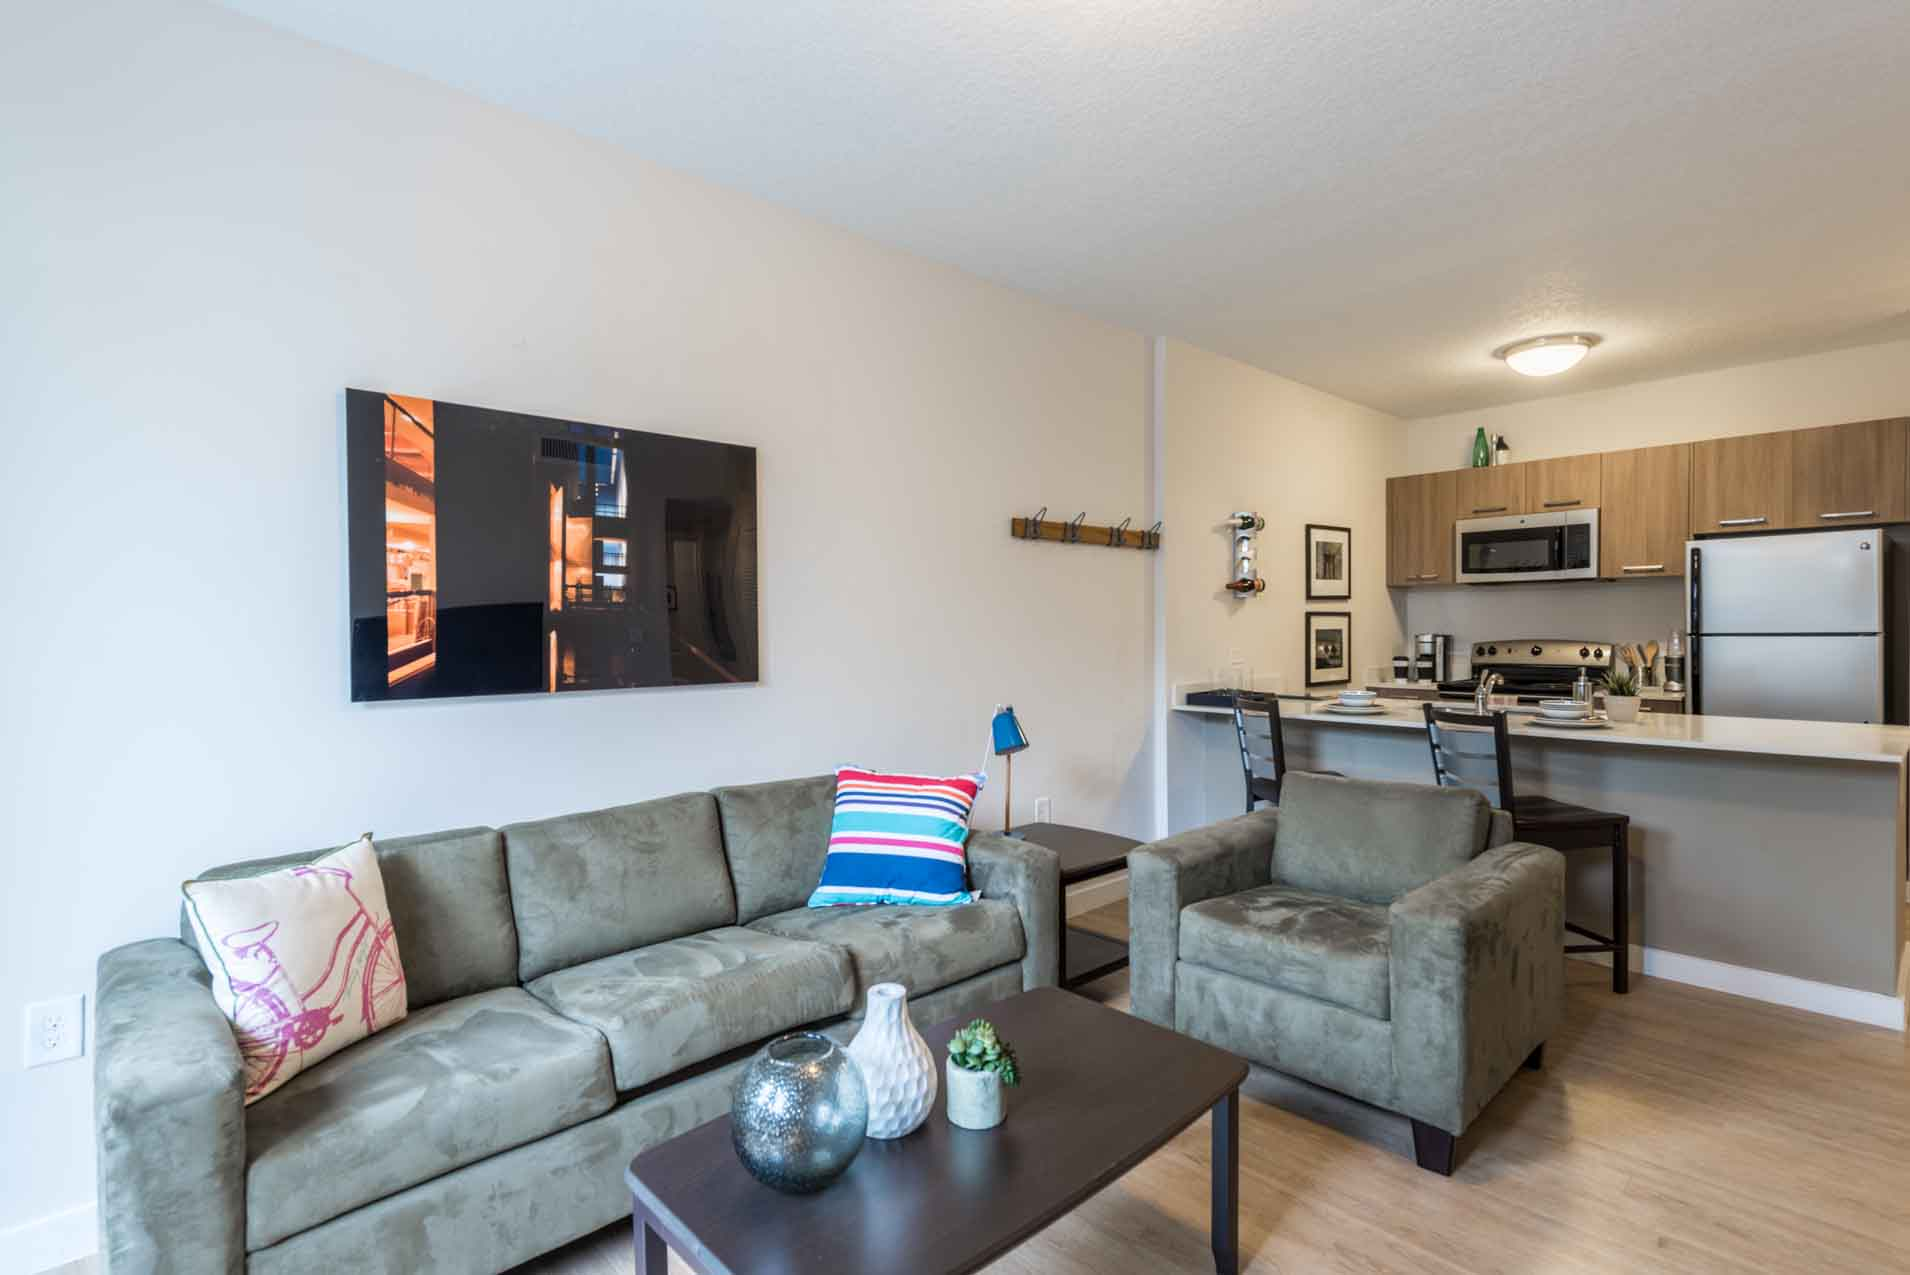 4th-Street-Commons-Miami-Living-Room2-Unilodgers